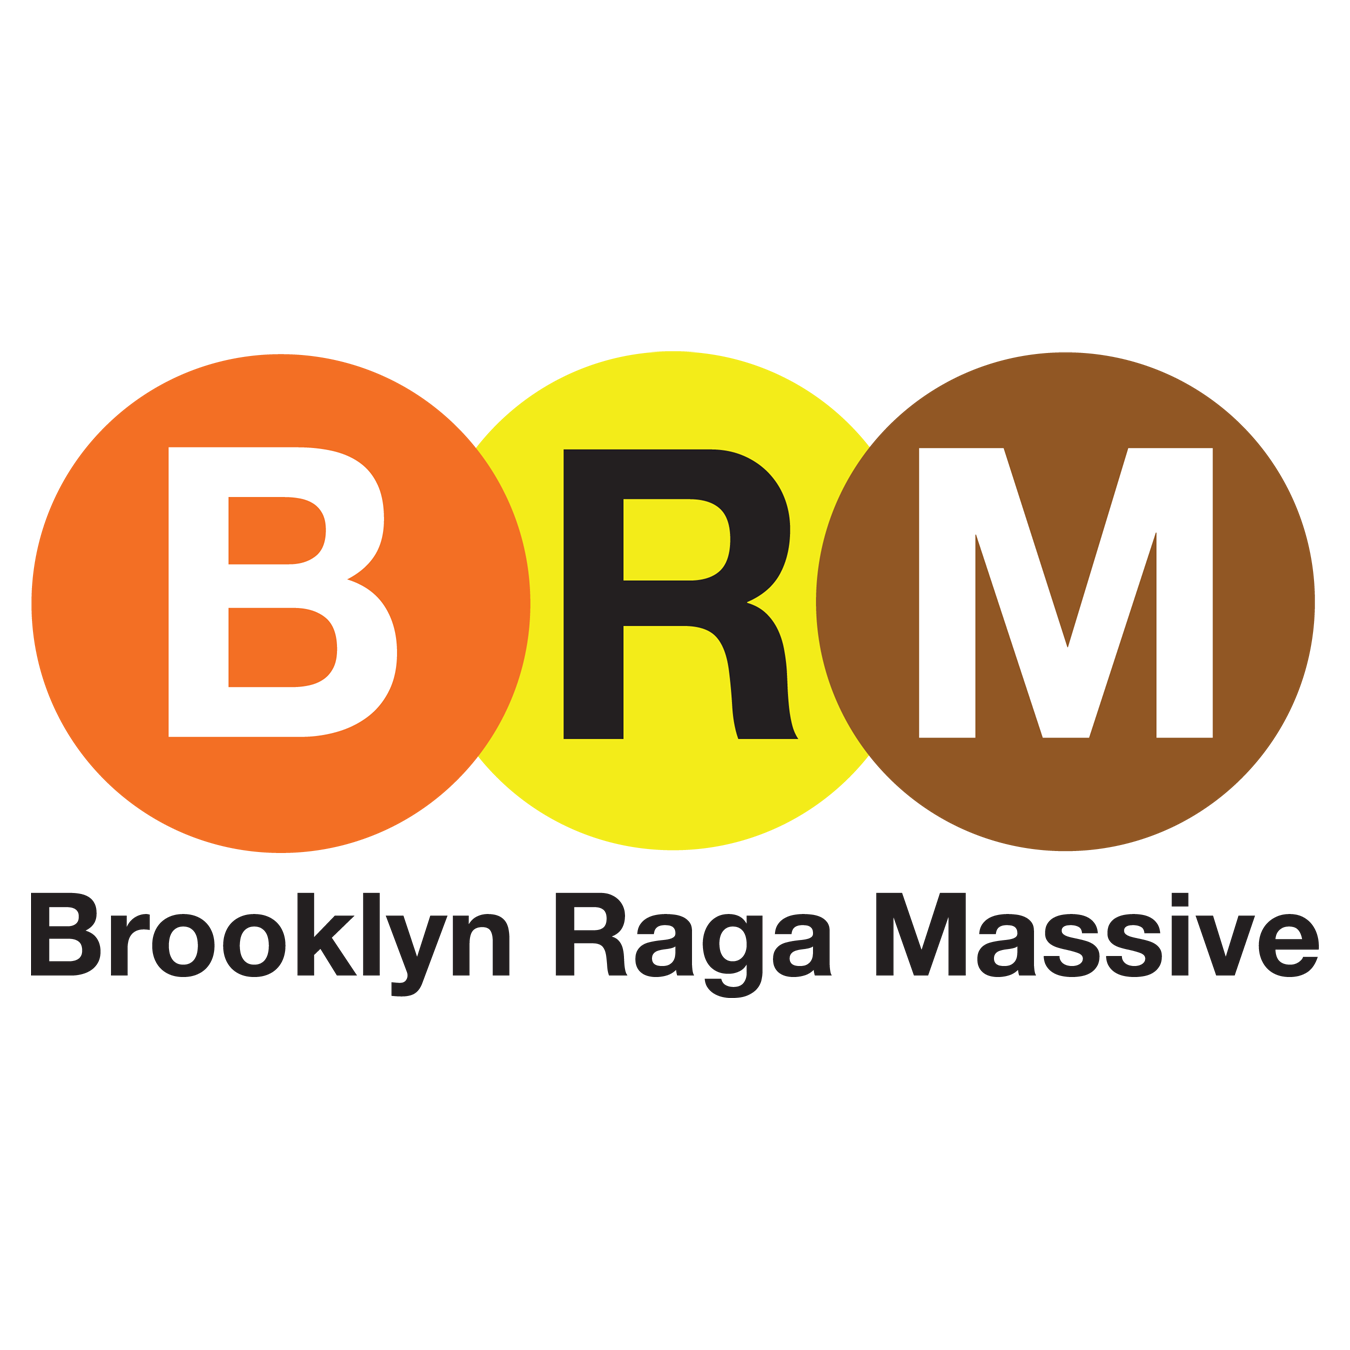 B R M subway tiles with text brooklyn raga massive